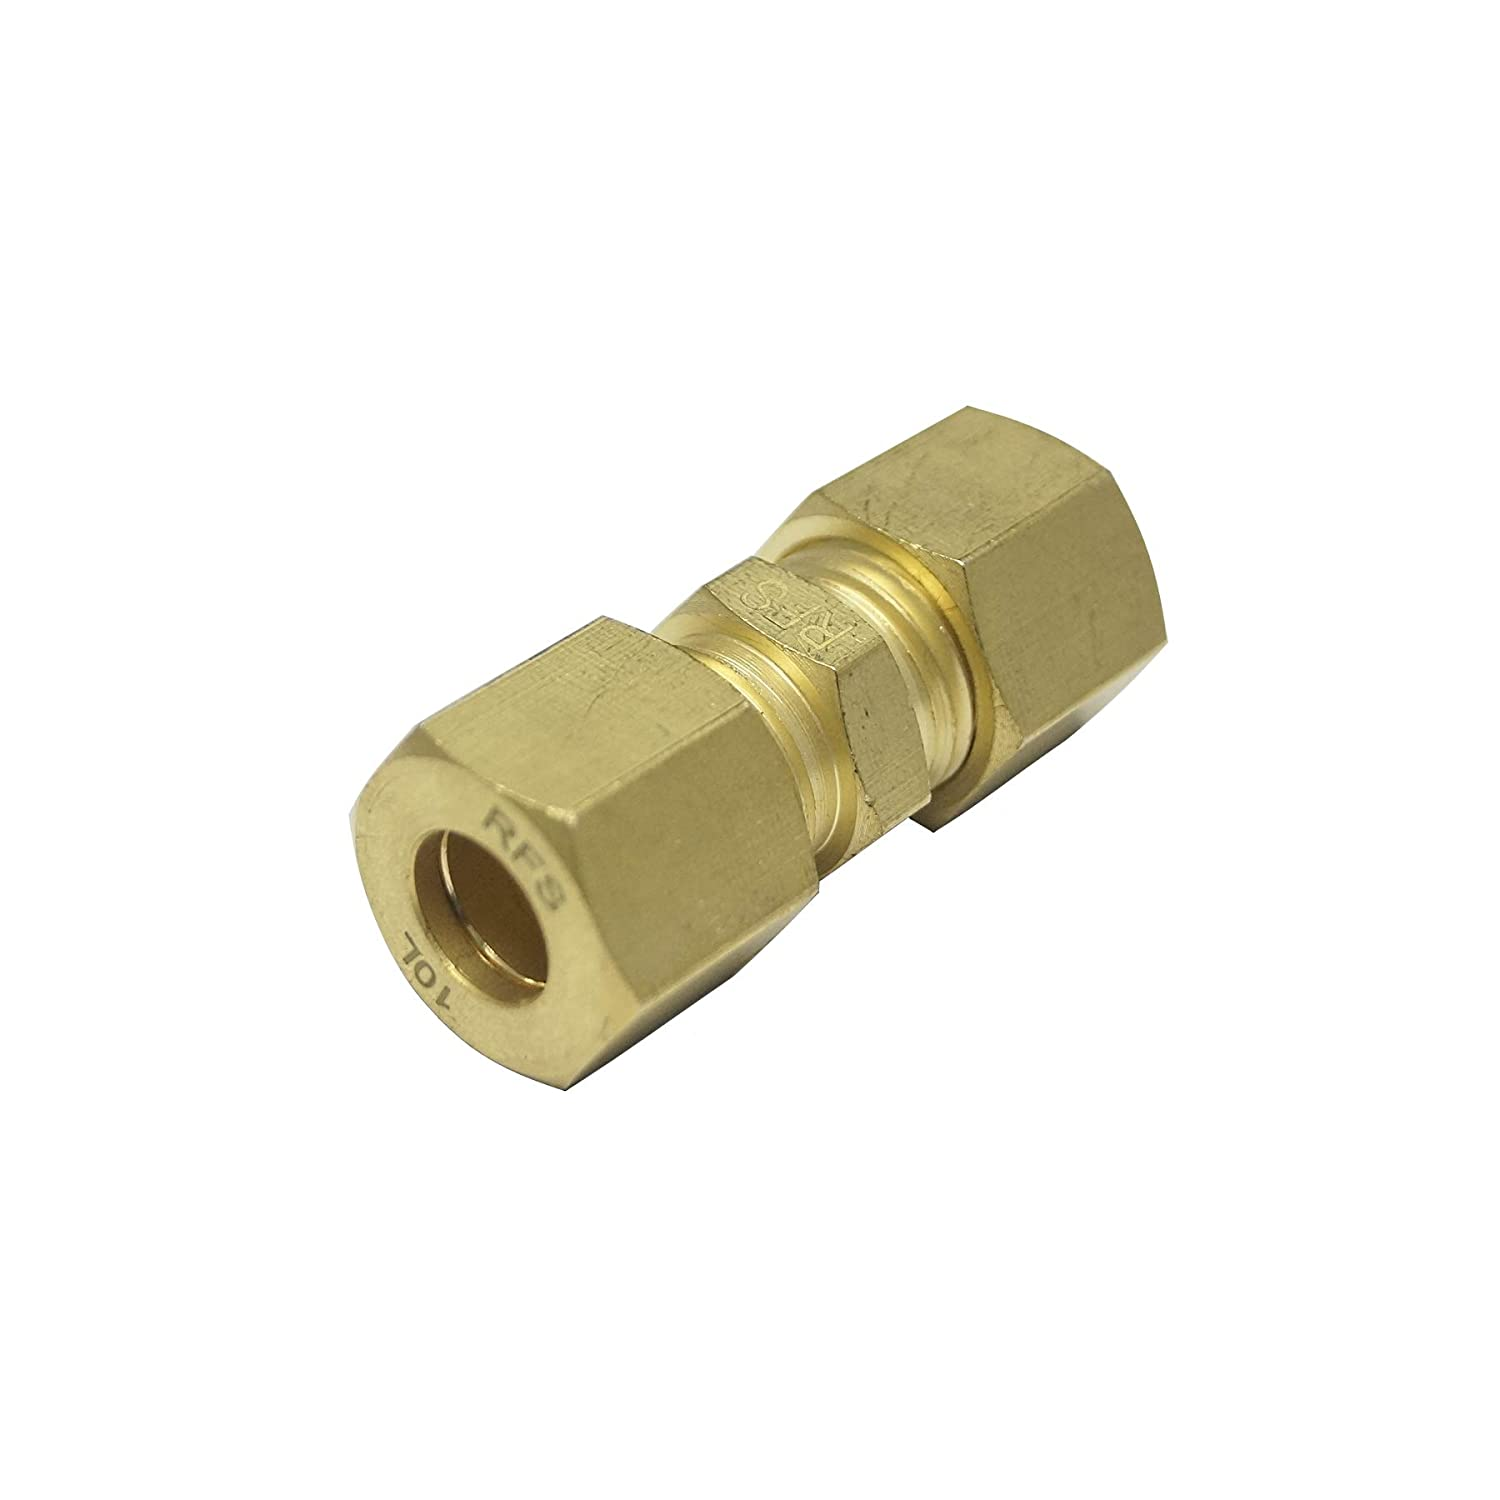 Union Coupling, Brass Material, 15L for 15MM OD Tube, Light Series